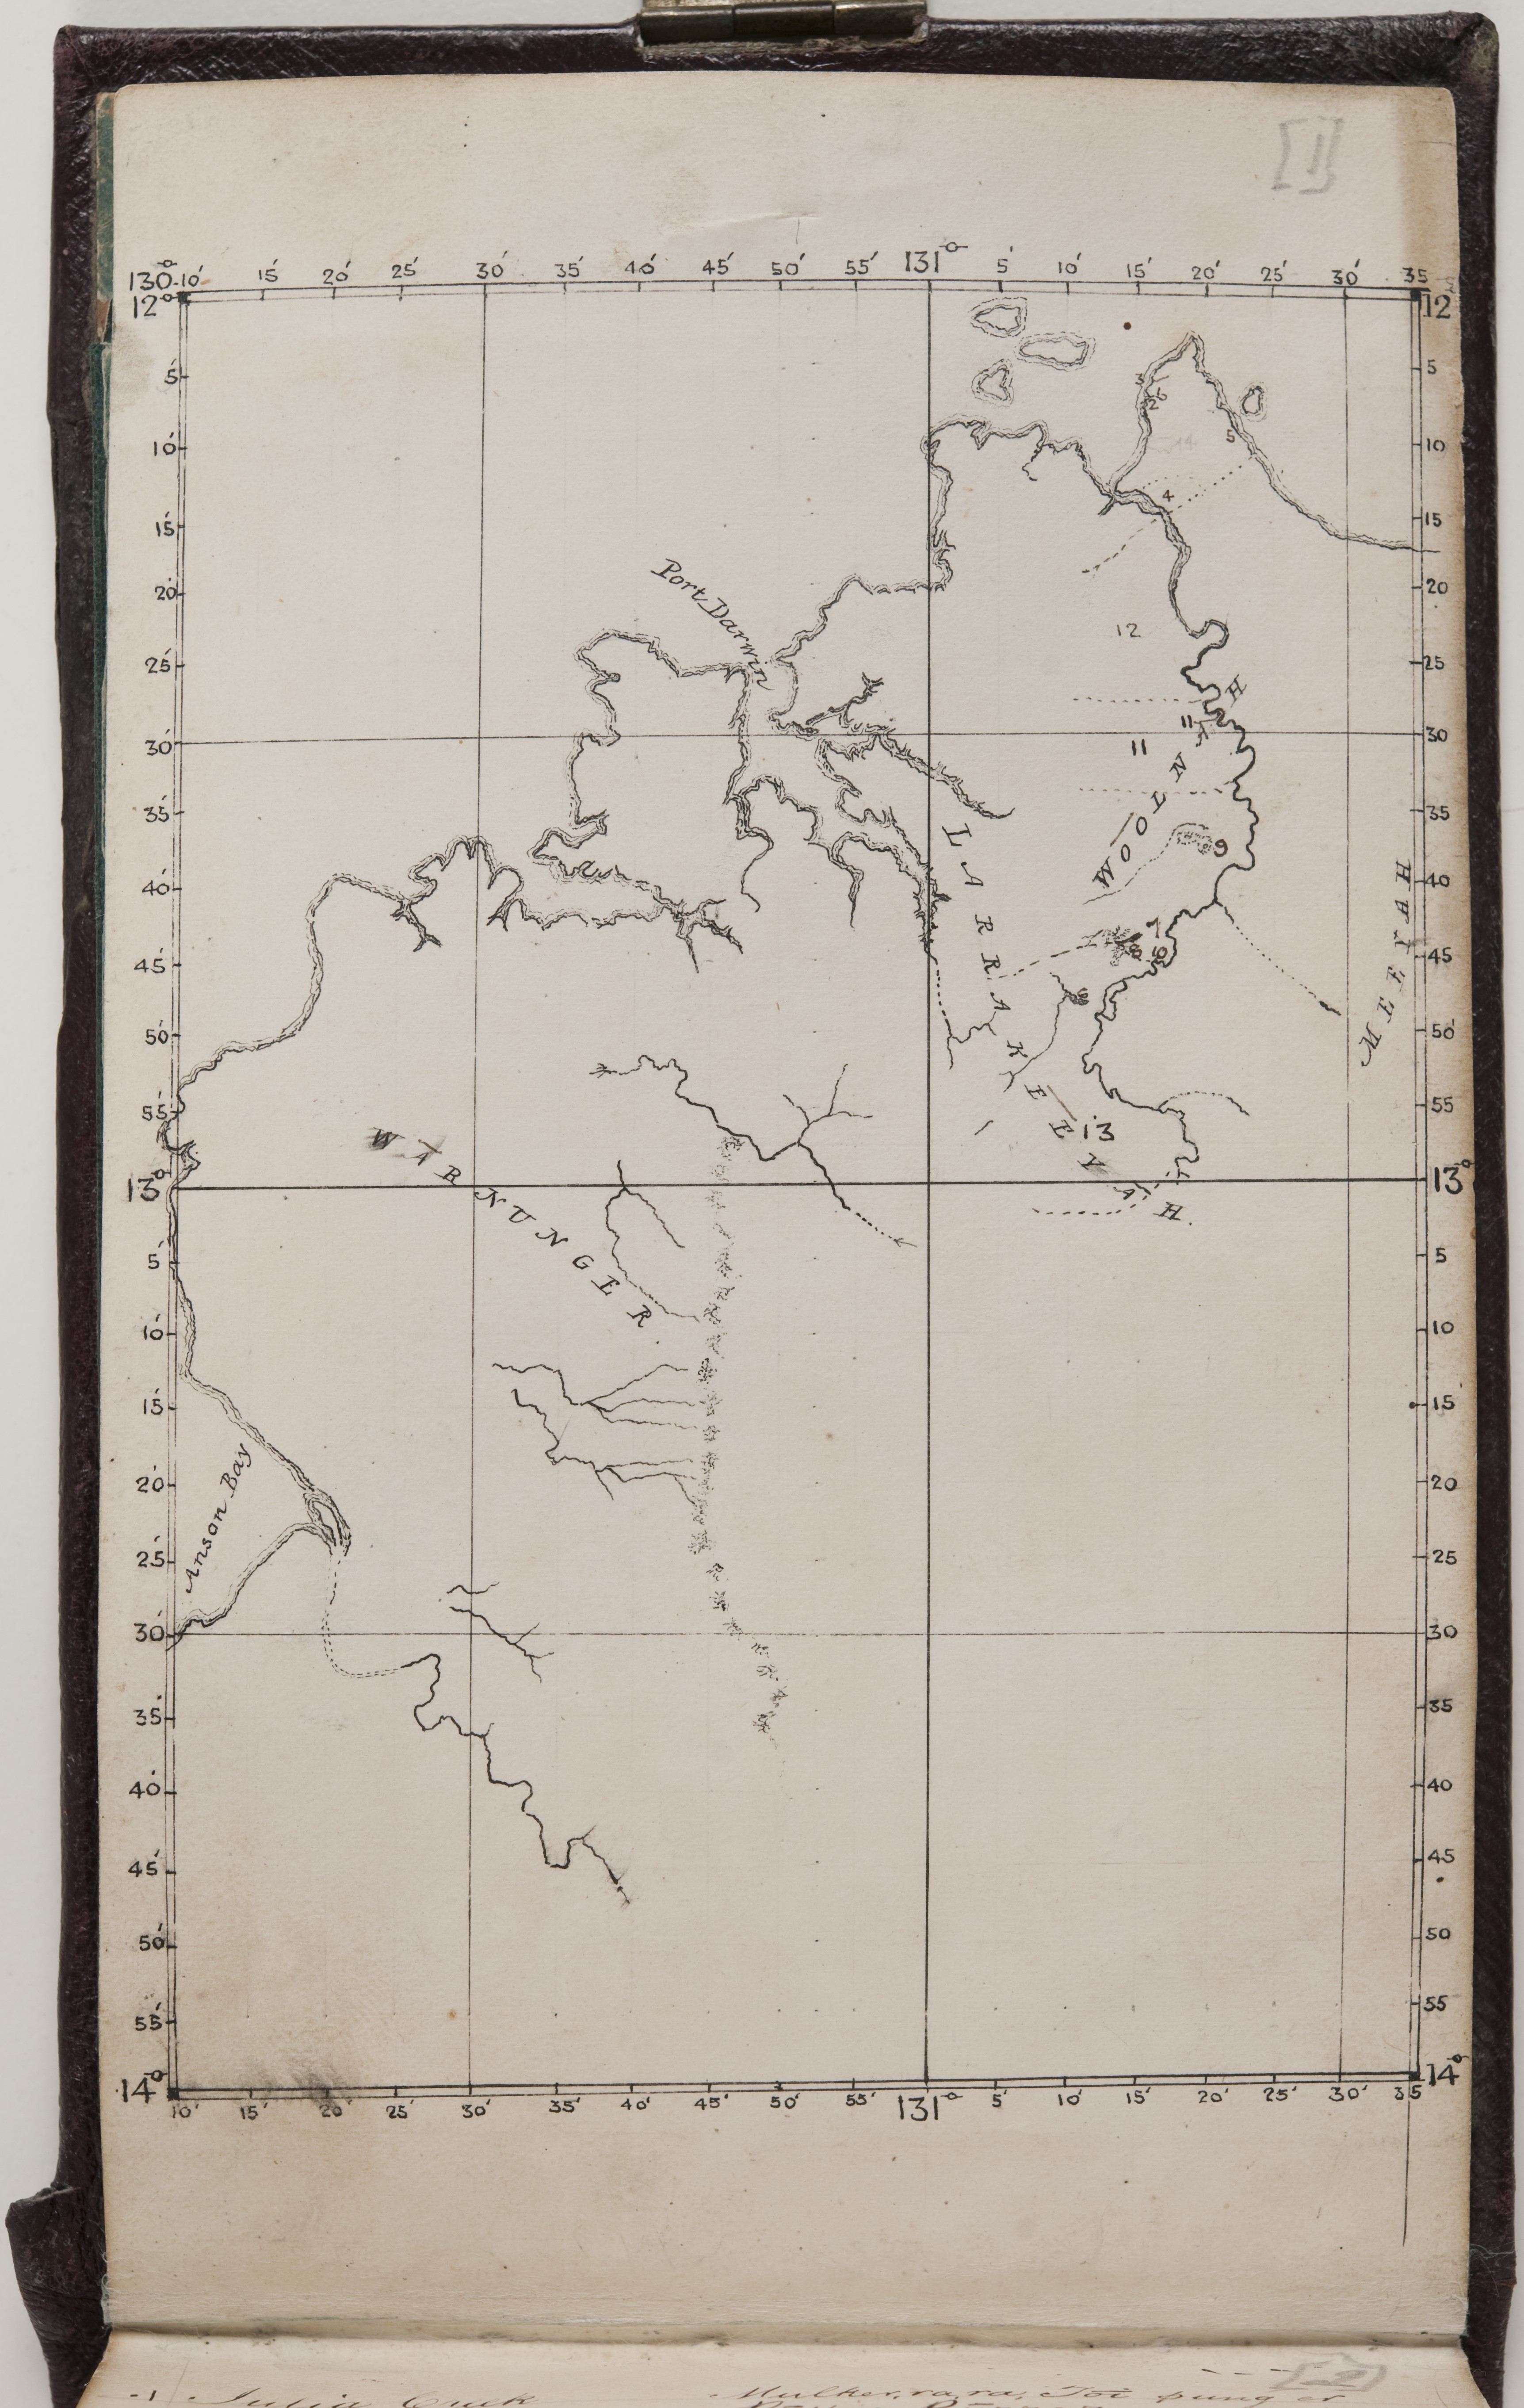 Hand-drawn map shows the coastline from Anson Bay to Port Darwin and the Adelaide River.